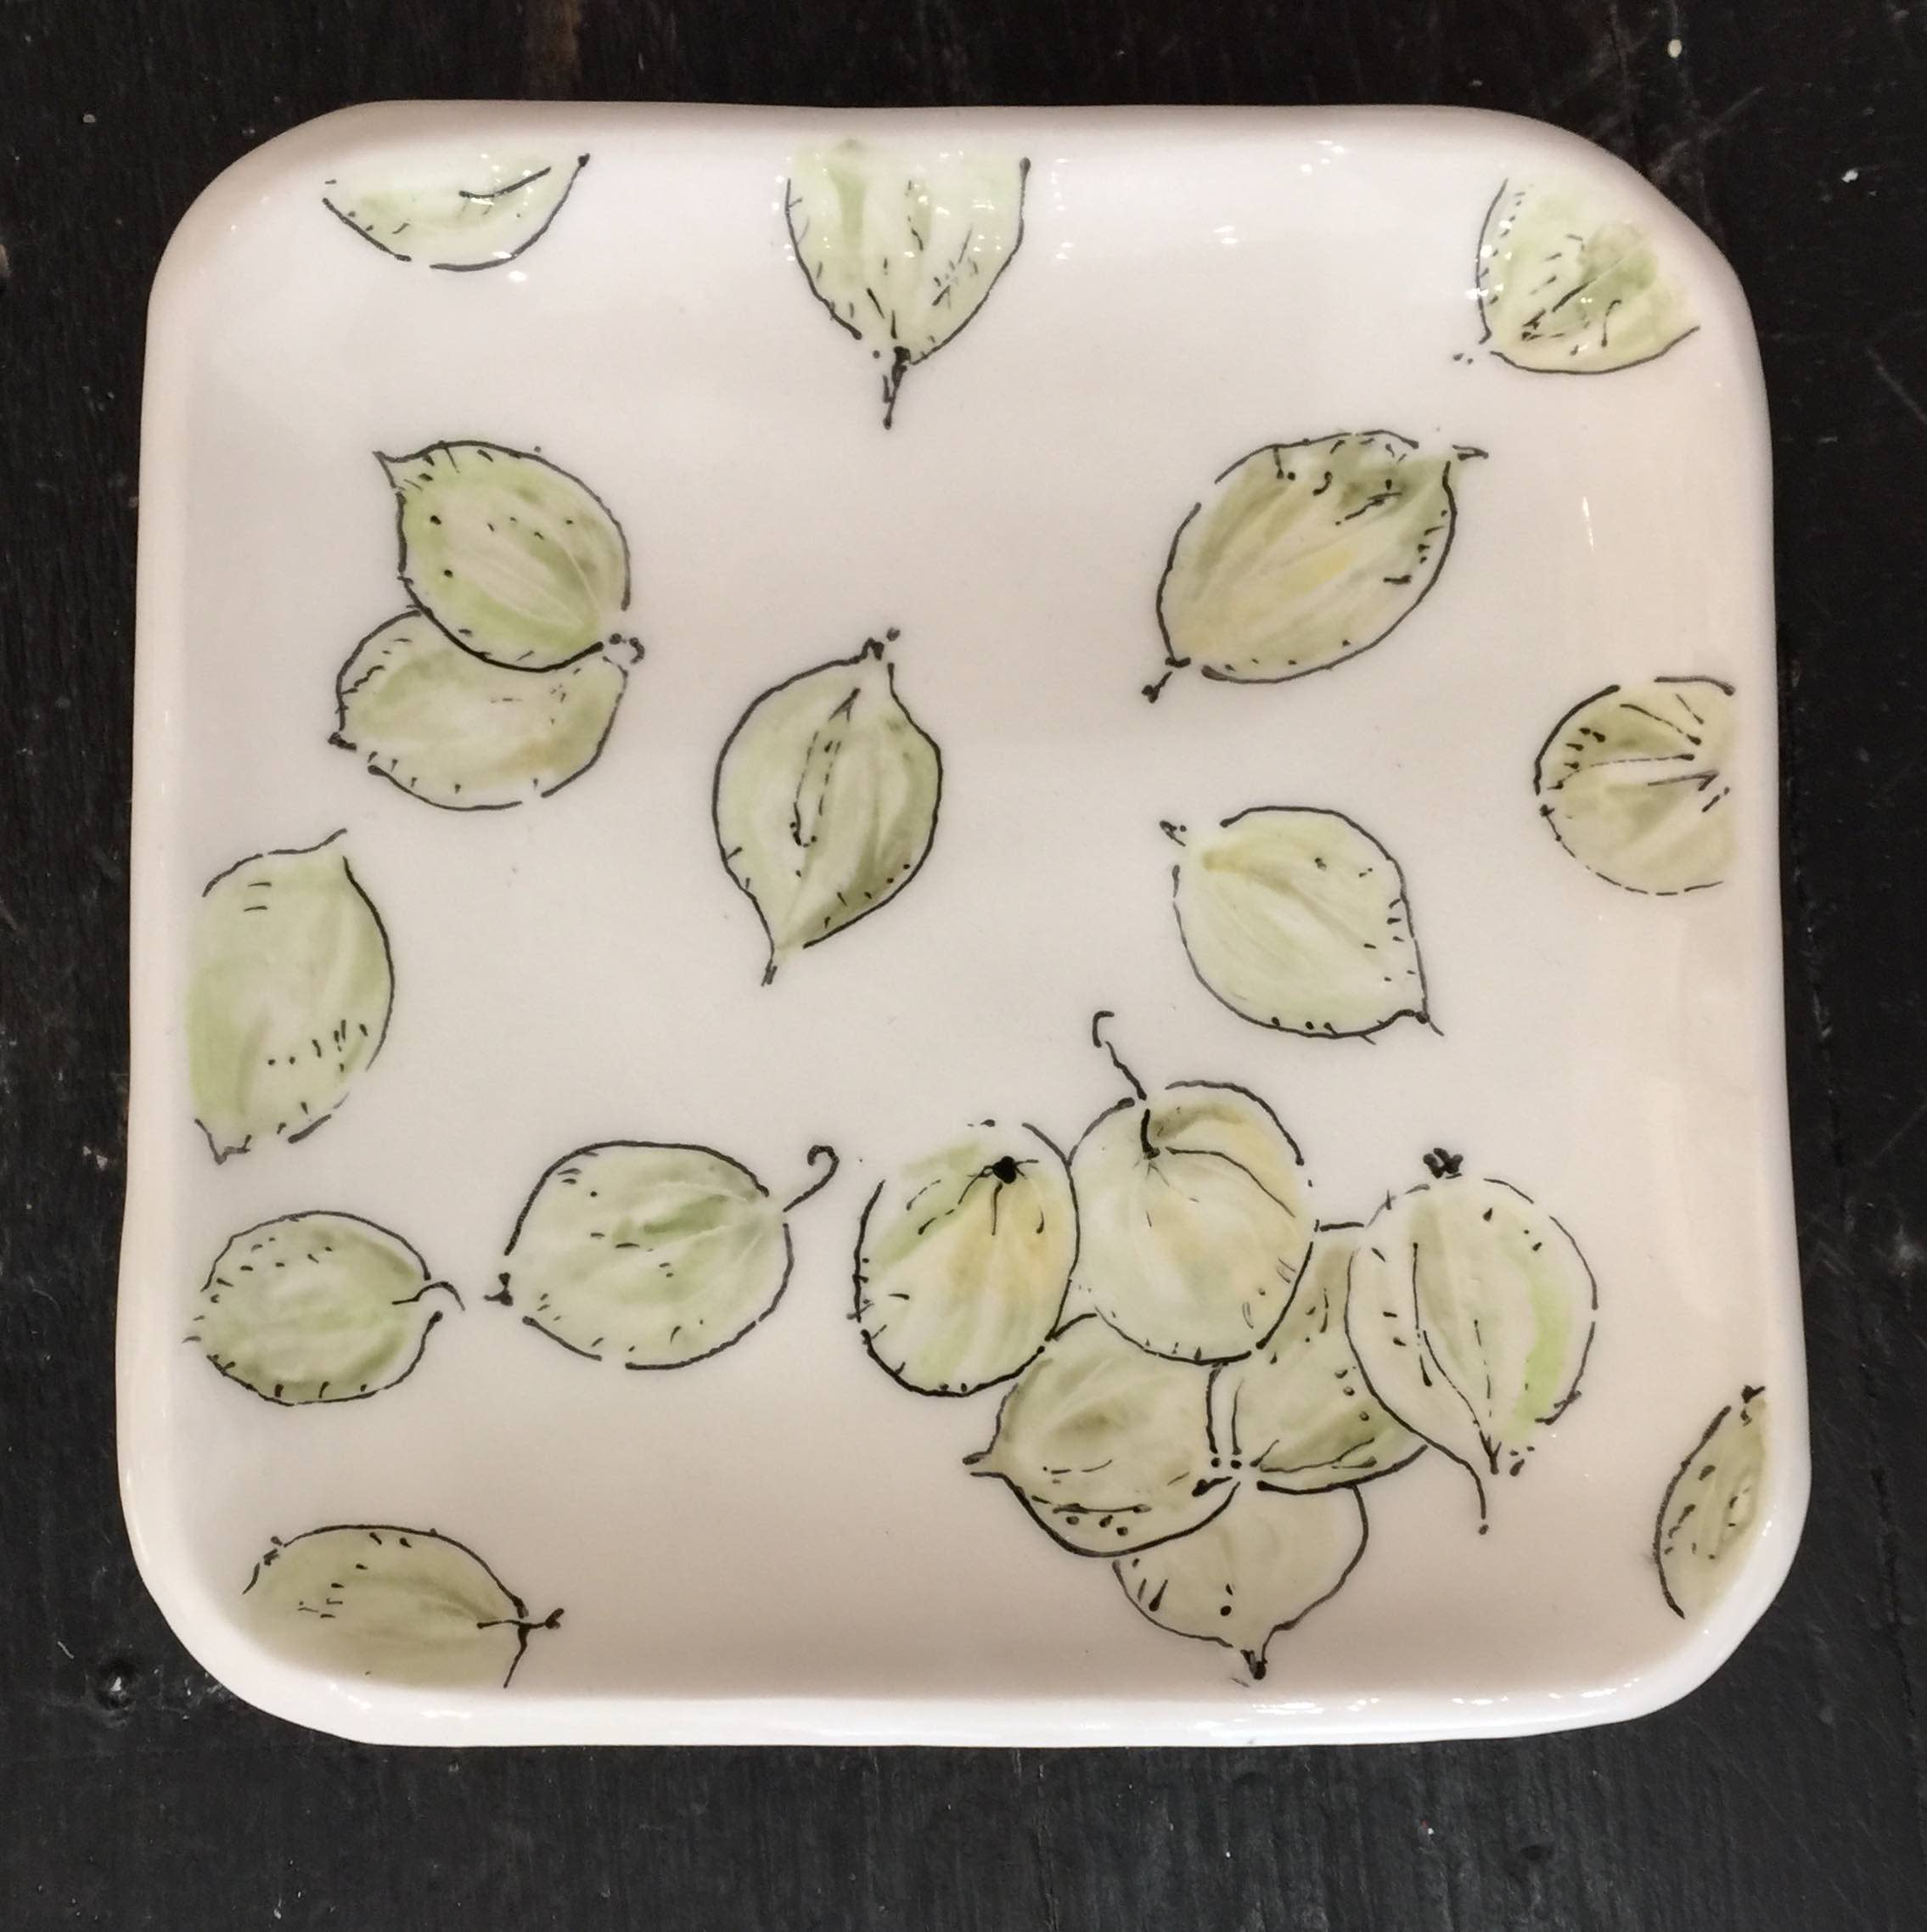 <span class=&#34;link fancybox-details-link&#34;><a href=&#34;/artists/33-kerry-edwards/works/2233-kerry-edwards-gooseberries/&#34;>View Detail Page</a></span><div class=&#34;artist&#34;><strong>Kerry Edwards</strong></div> <div class=&#34;title&#34;><em>Gooseberries </em></div> <div class=&#34;medium&#34;>Ceramic </div> <div class=&#34;dimensions&#34;>15.5 x 15.5 cm </div><div class=&#34;price&#34;>£45.00</div><div class=&#34;copyright_line&#34;>Copyright The Artist</div>